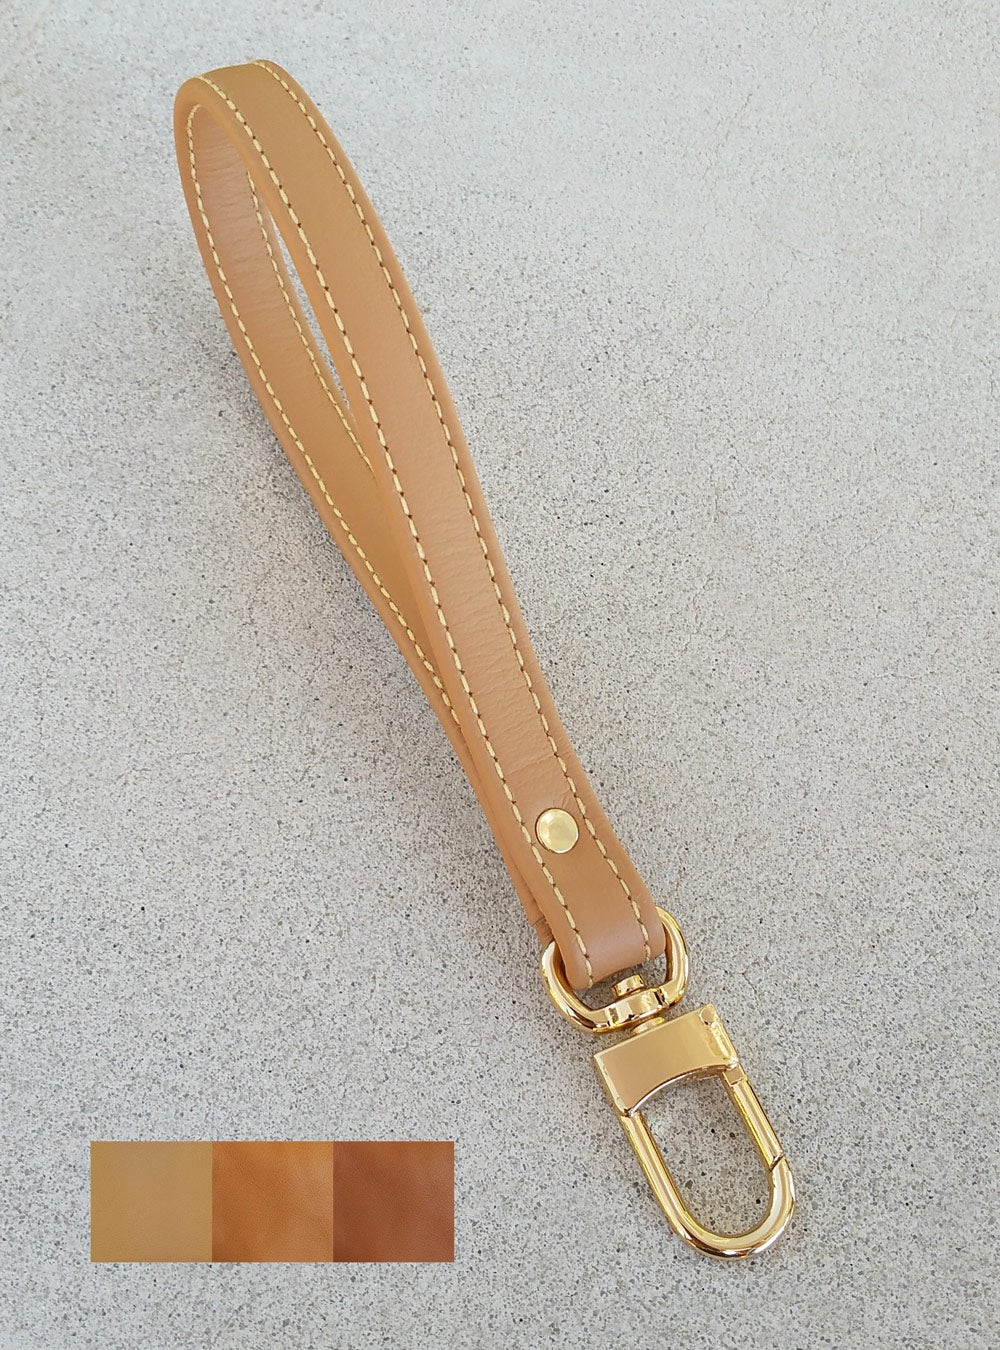 Tan Leather Wrist Strap With Yellow Stitching Choose